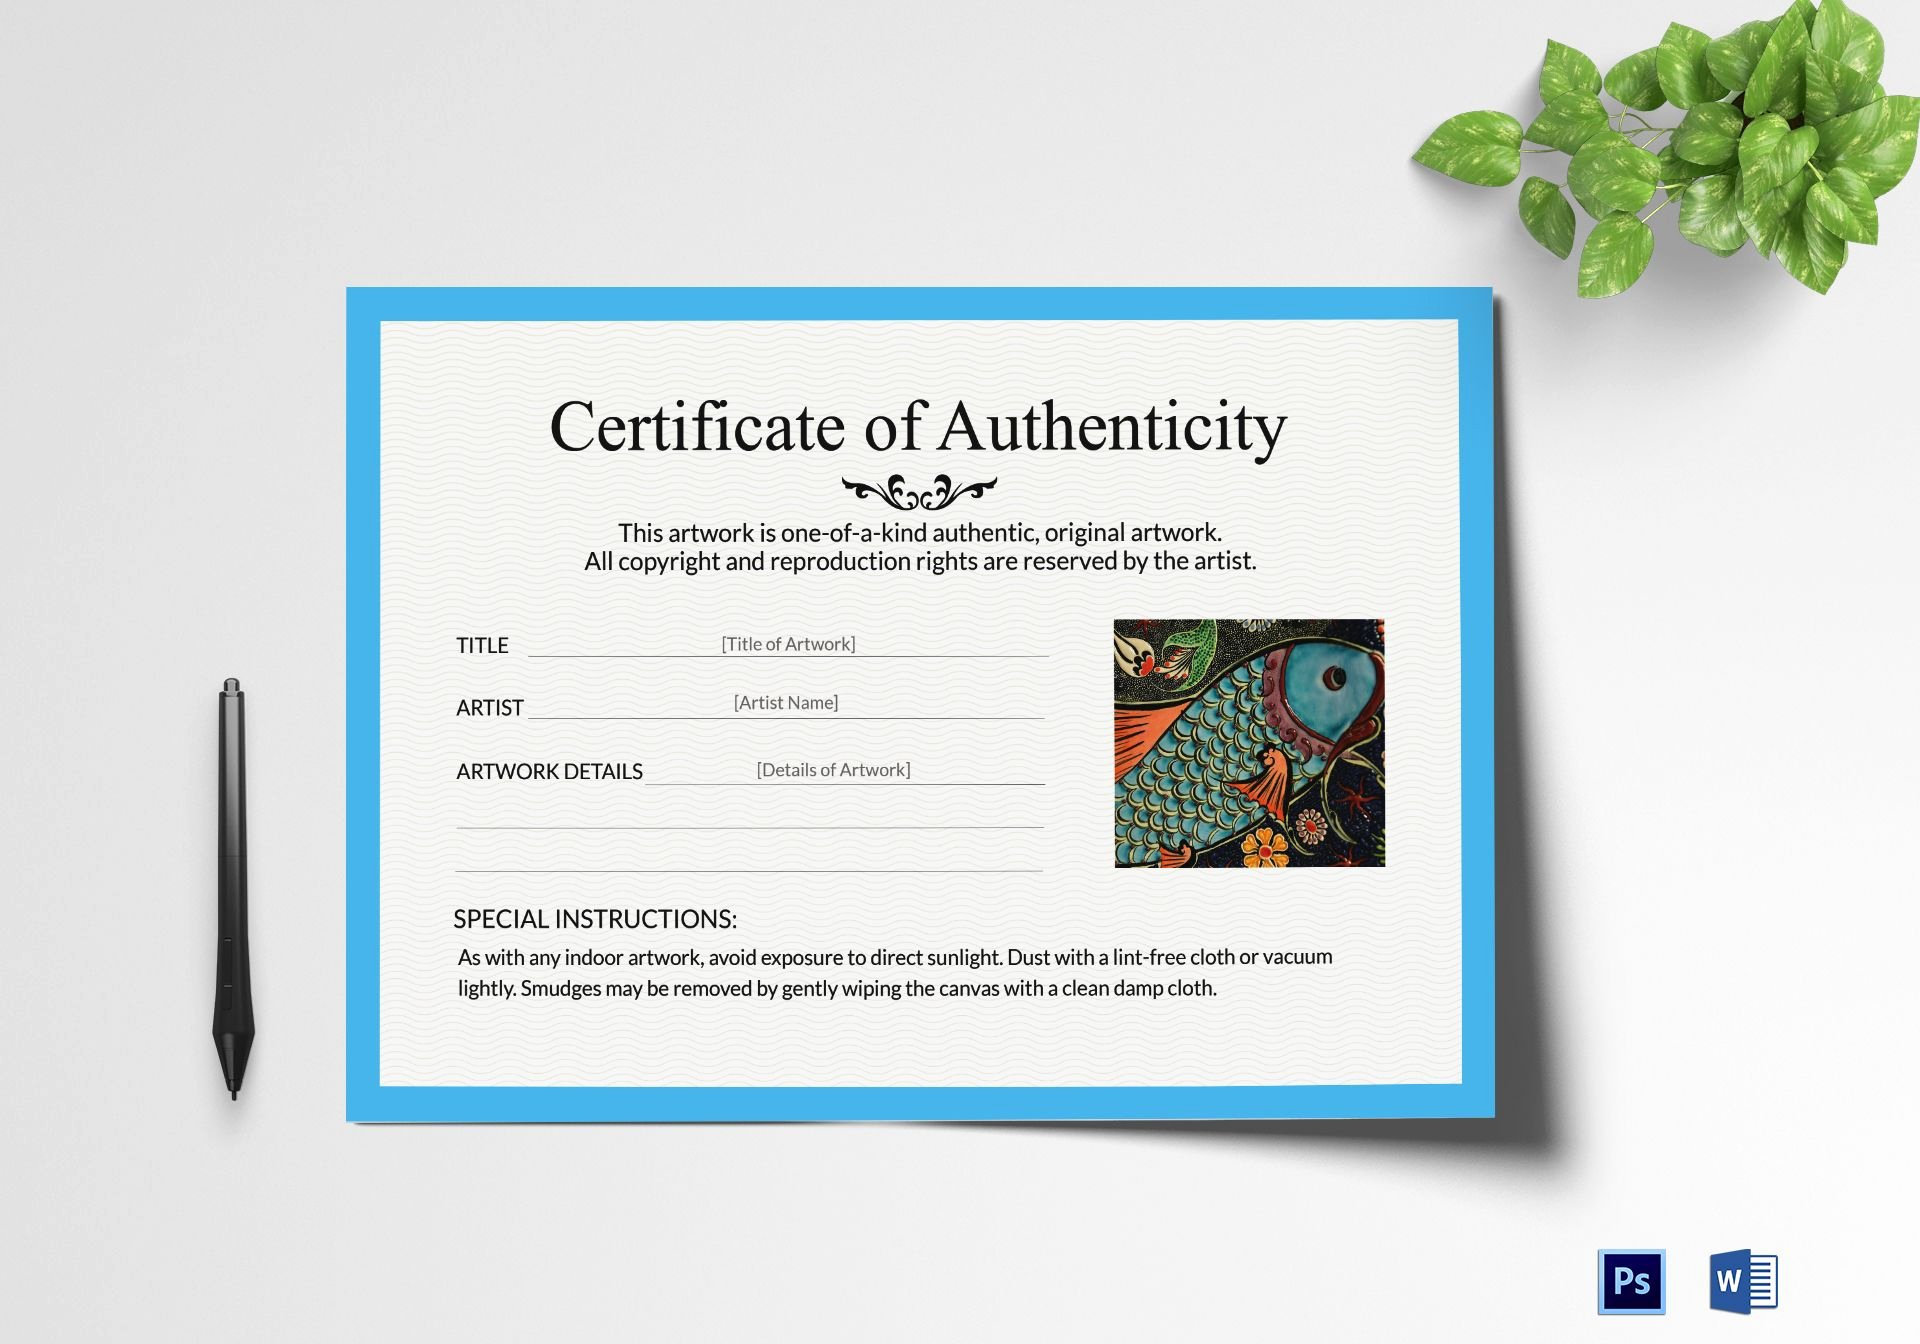 Art Certificate Of Authenticity Template Beautiful Artwork Authenticity Certificate Design Template In Psd Word